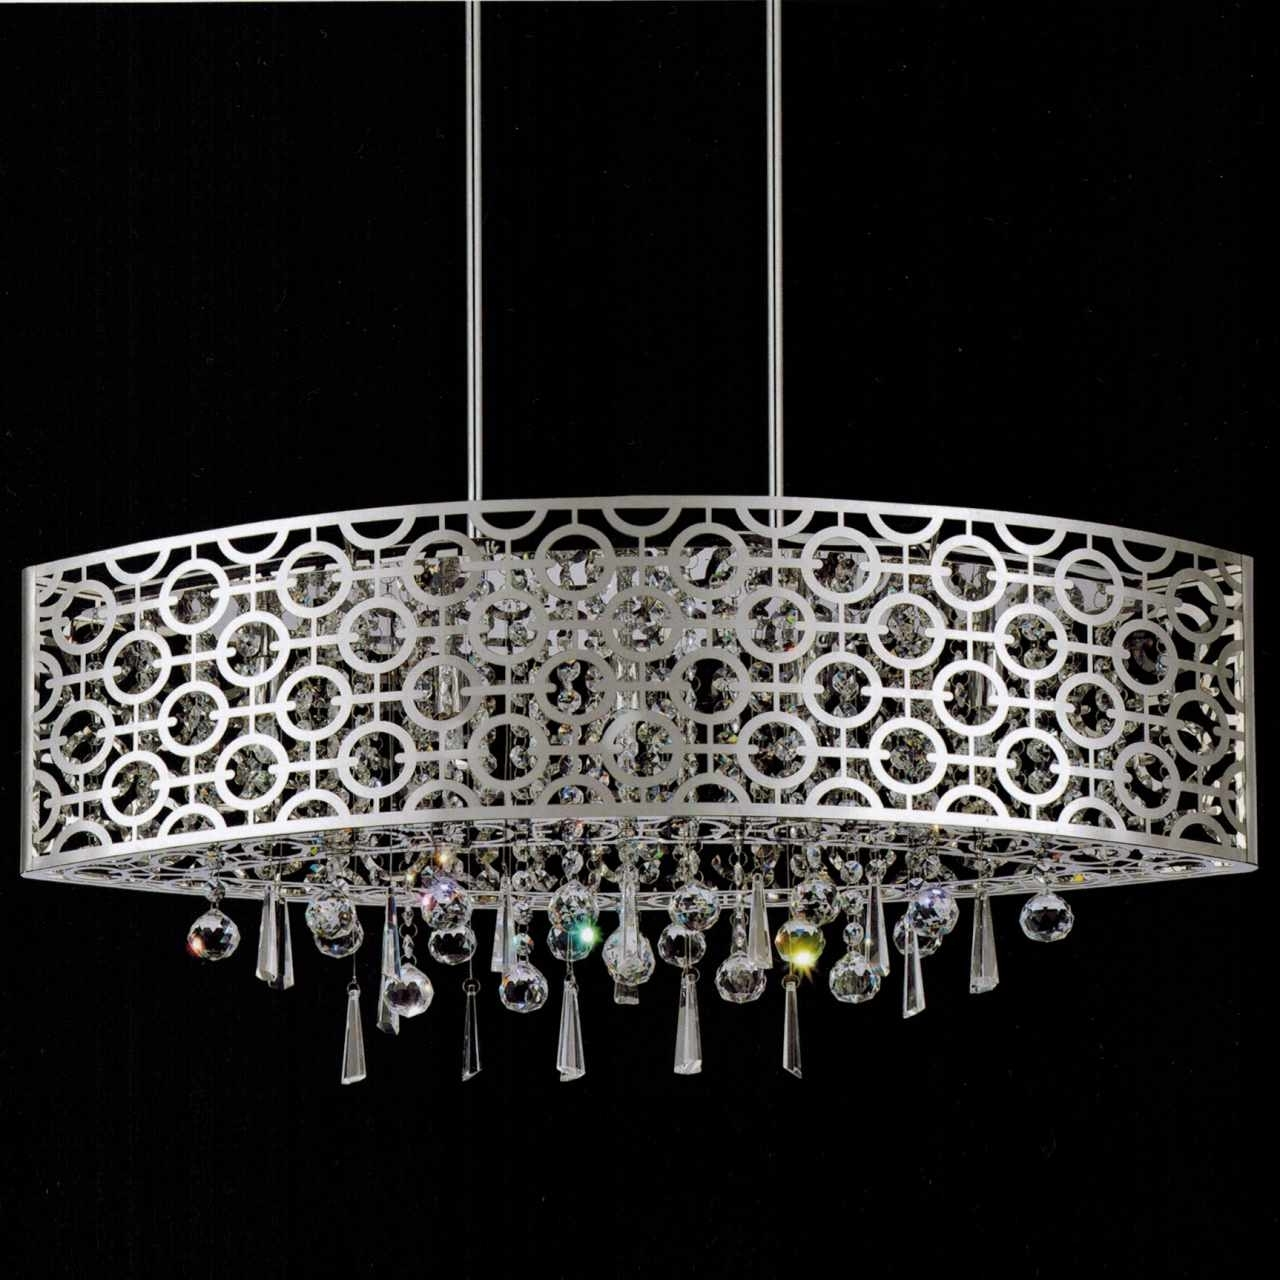 Modern Pendant Chandelier Lighting Throughout Trendy Brizzo Lighting Stores (View 14 of 15)